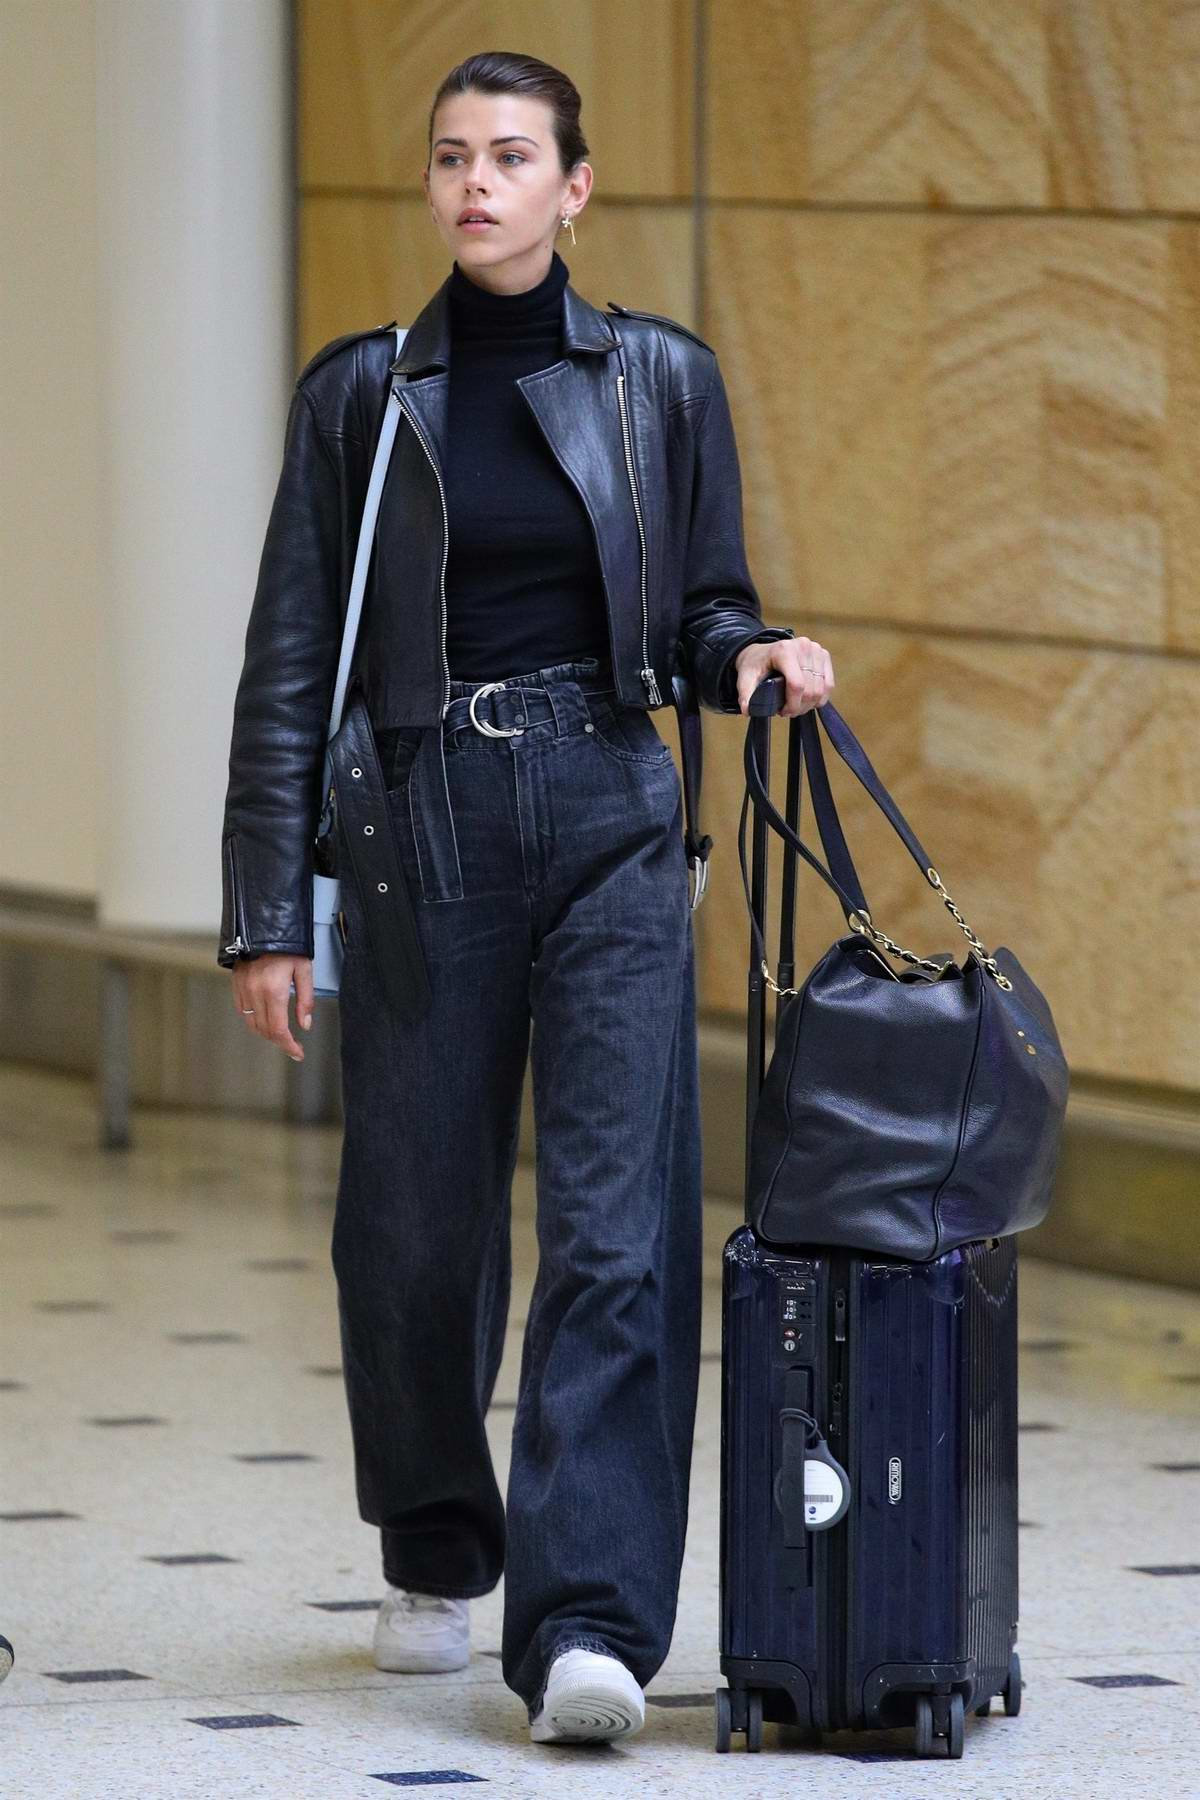 Georgia Fowler in a leather jacket over a black turtle-neck seen arriving at Sydney International Airport, Australia